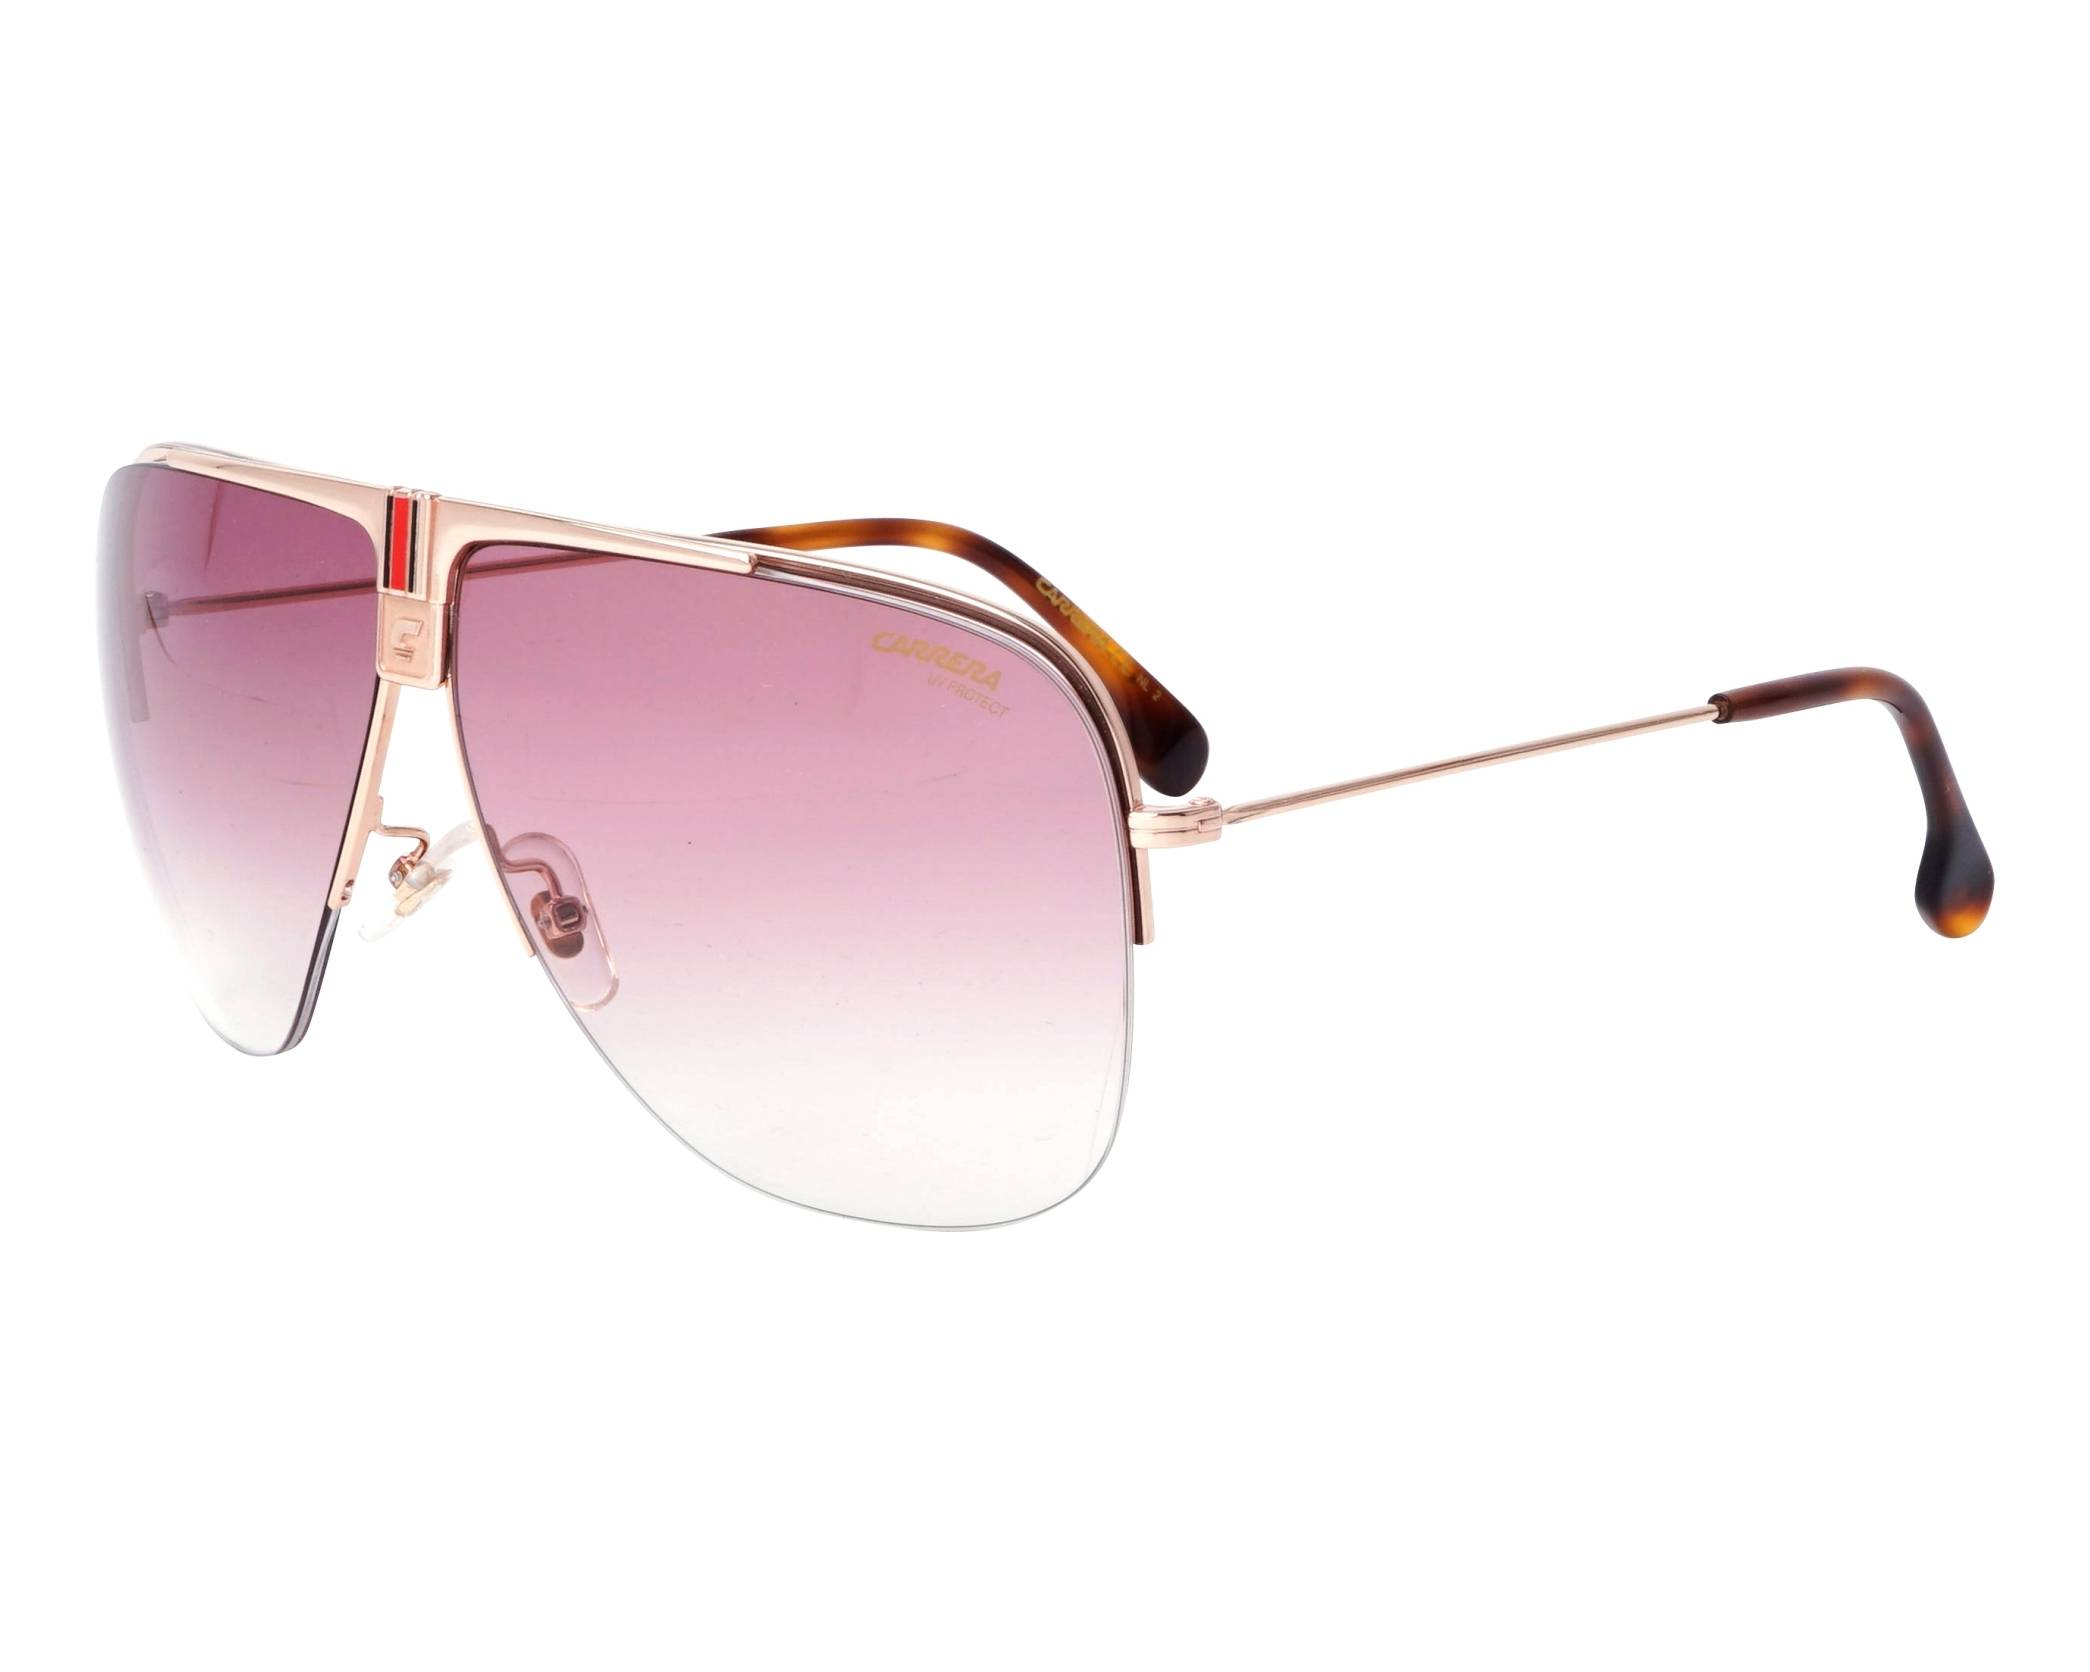 9c4b3fa1ed Sunglasses Carrera 1013-S DDB3X 64-9 Rose gold profile view